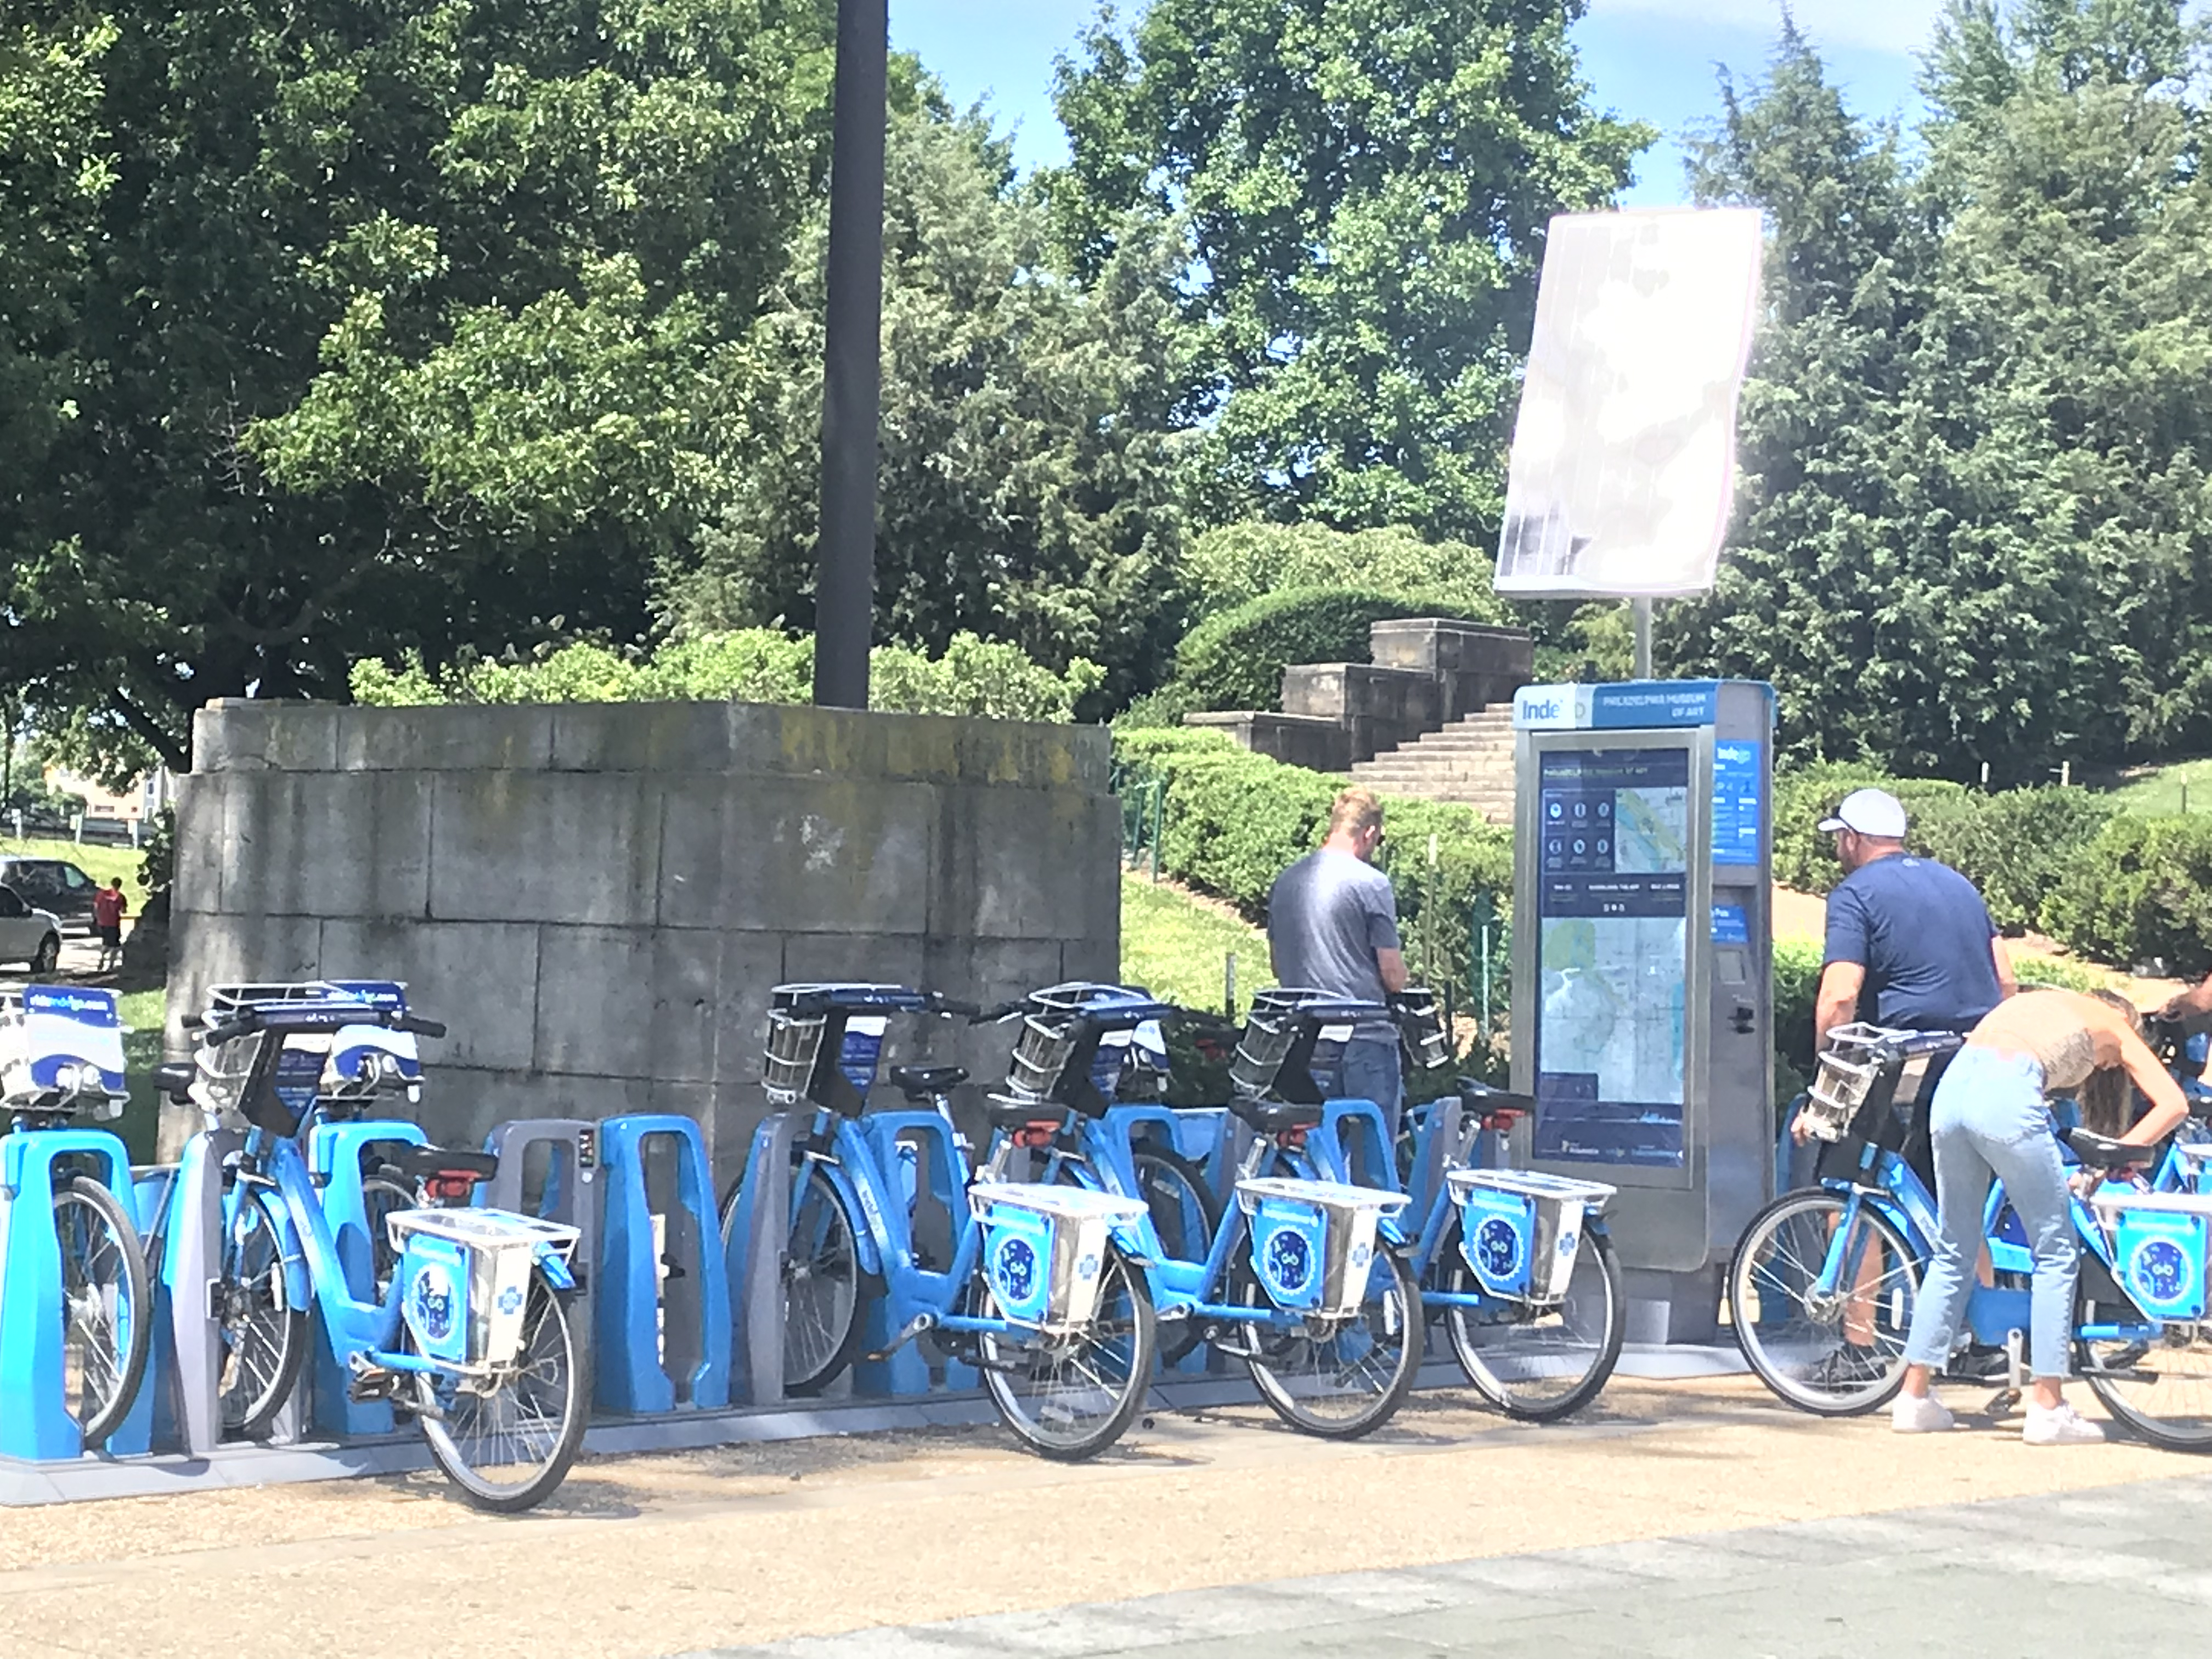 Need to a borrow a bike to go bike riding in Philly? Try Indego.